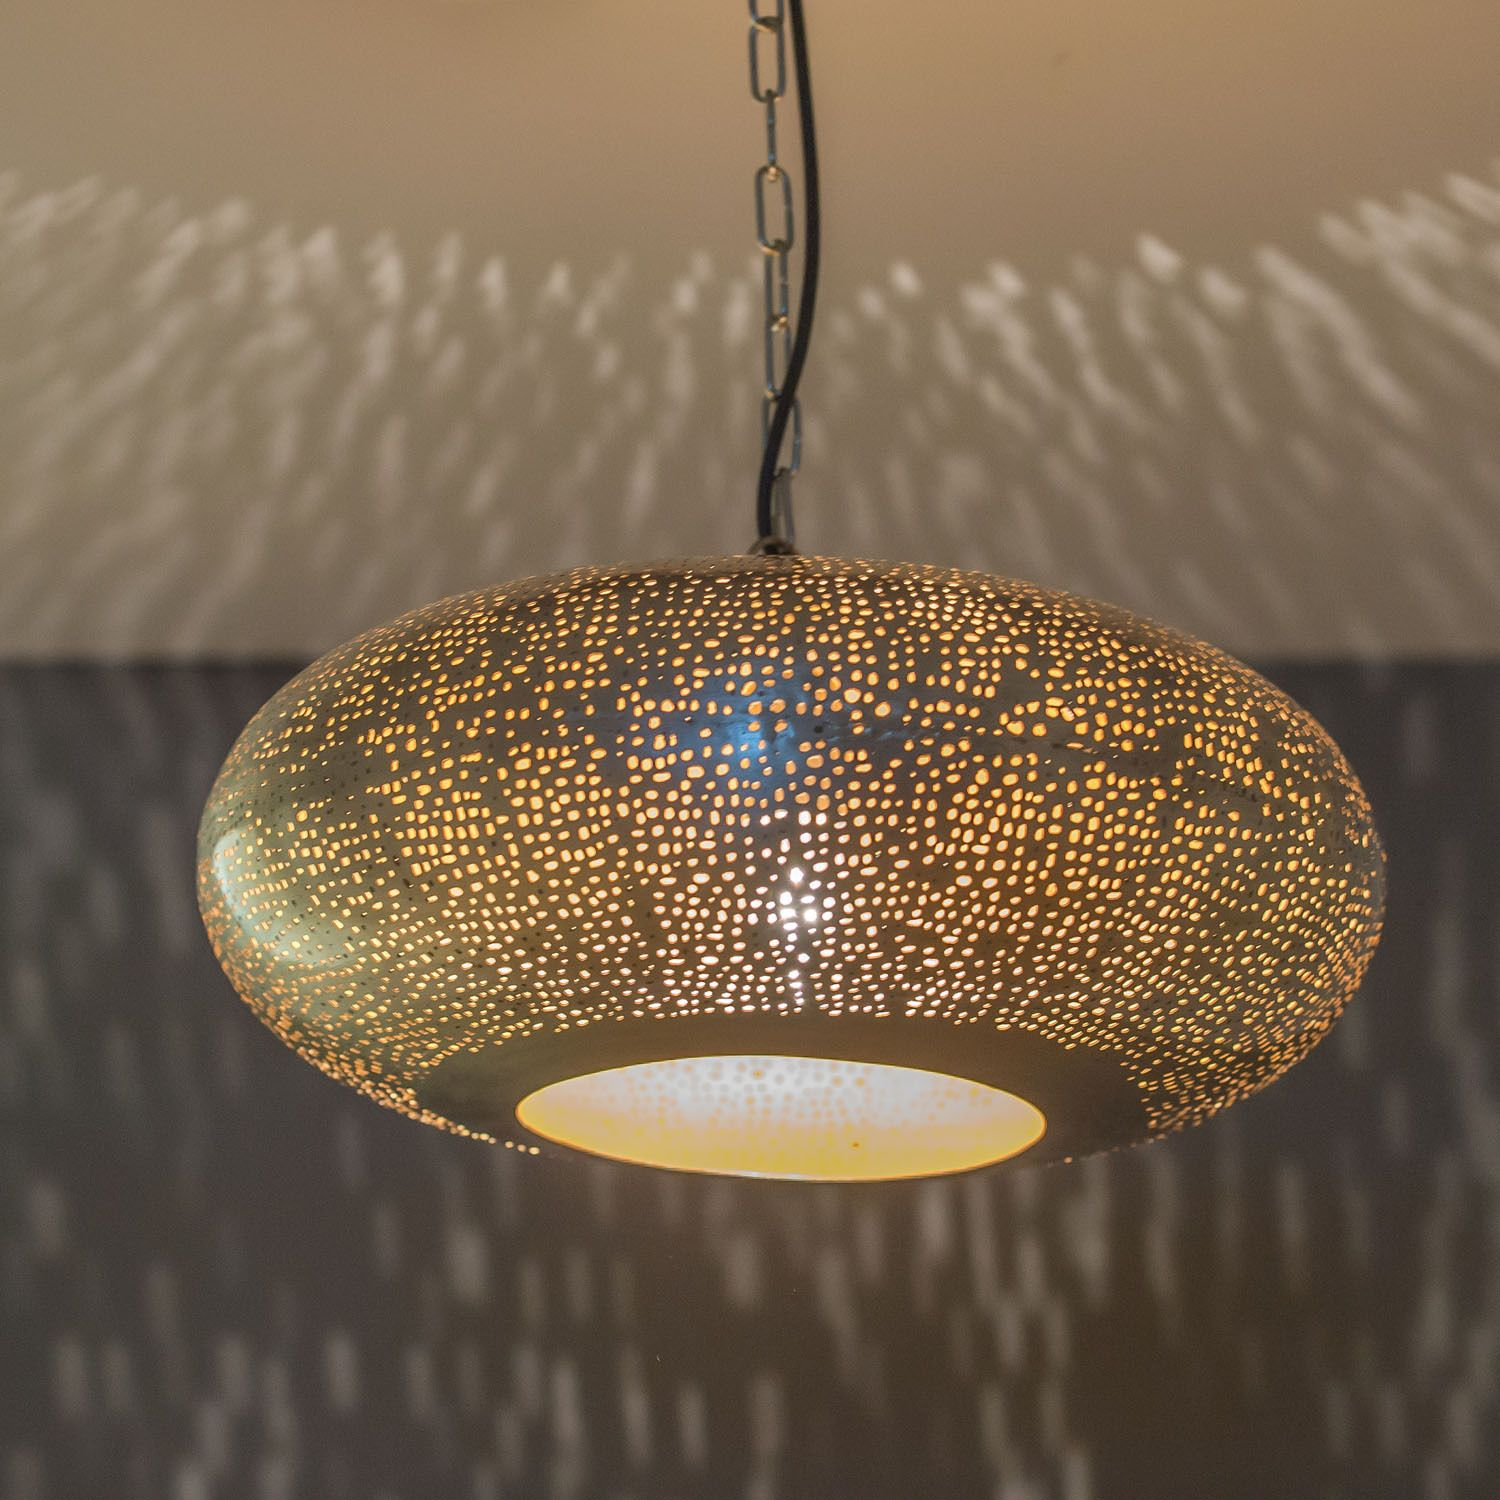 Emporio moroccan lights marrakesh handmade chandelier oval tyre mesh emporio moroccan lights marrakesh handmade chandelier oval tyre mesh etch design arubaitofo Gallery